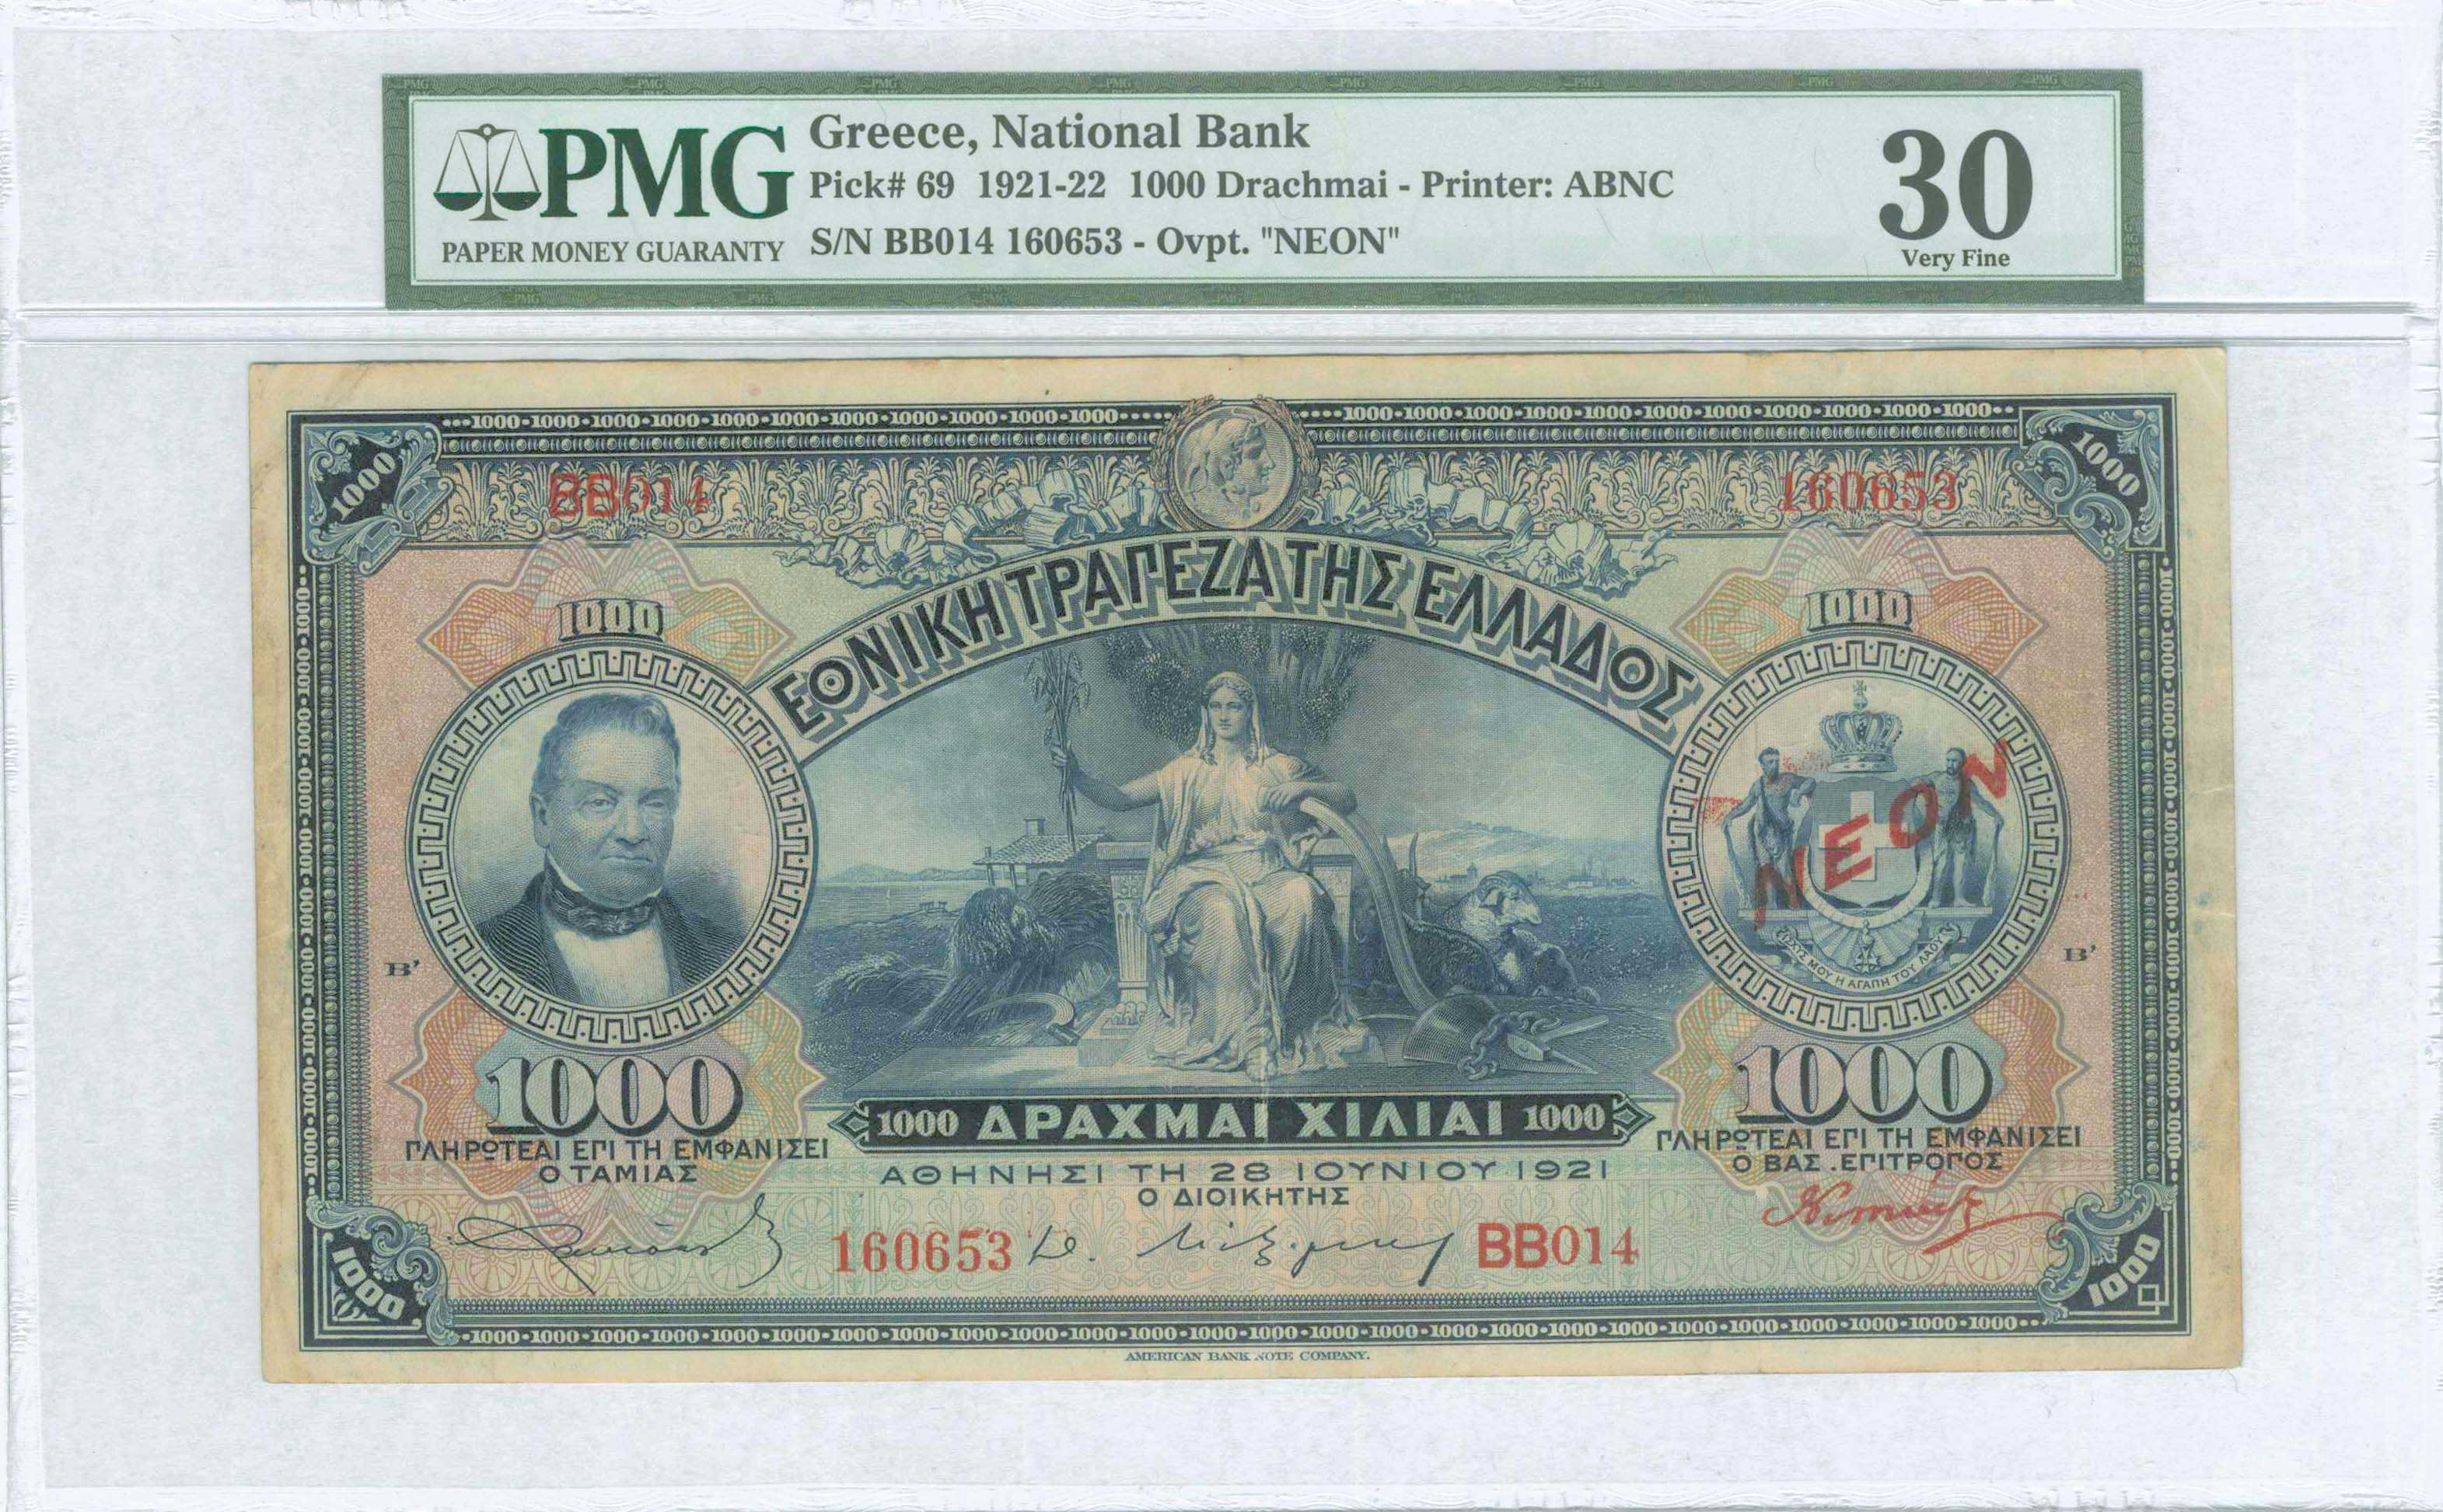 Lot 6364 - -  PAPER MONEY - BANKNOTES National Bank of Greece -  A. Karamitsos Public & Live Bid Auction 636 Coins, Medals & Banknotes